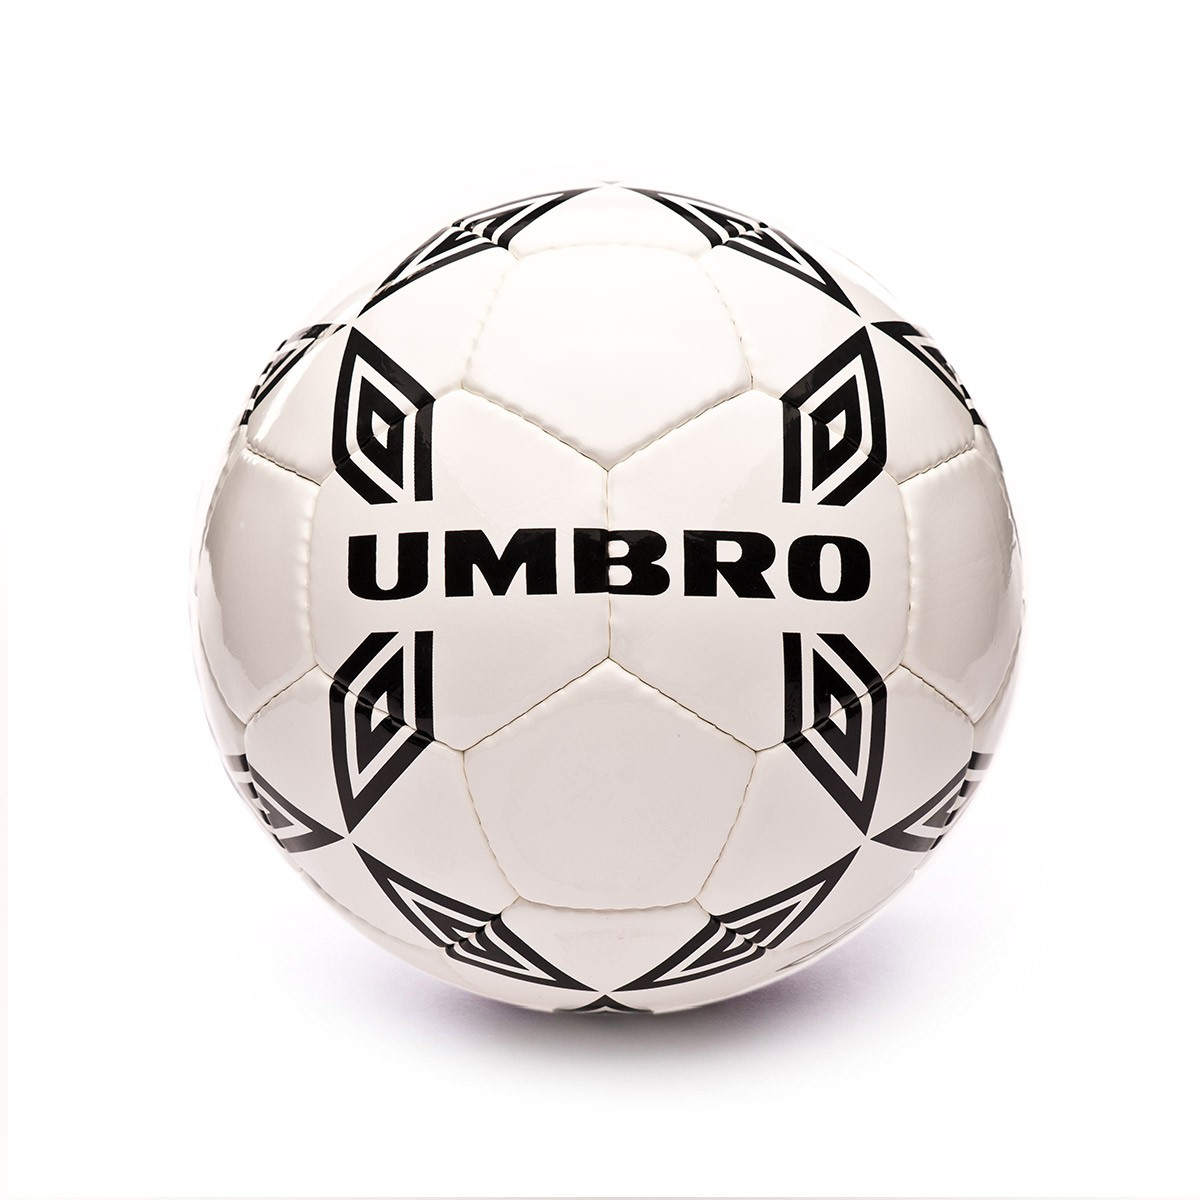 umbro extra bounce shoes